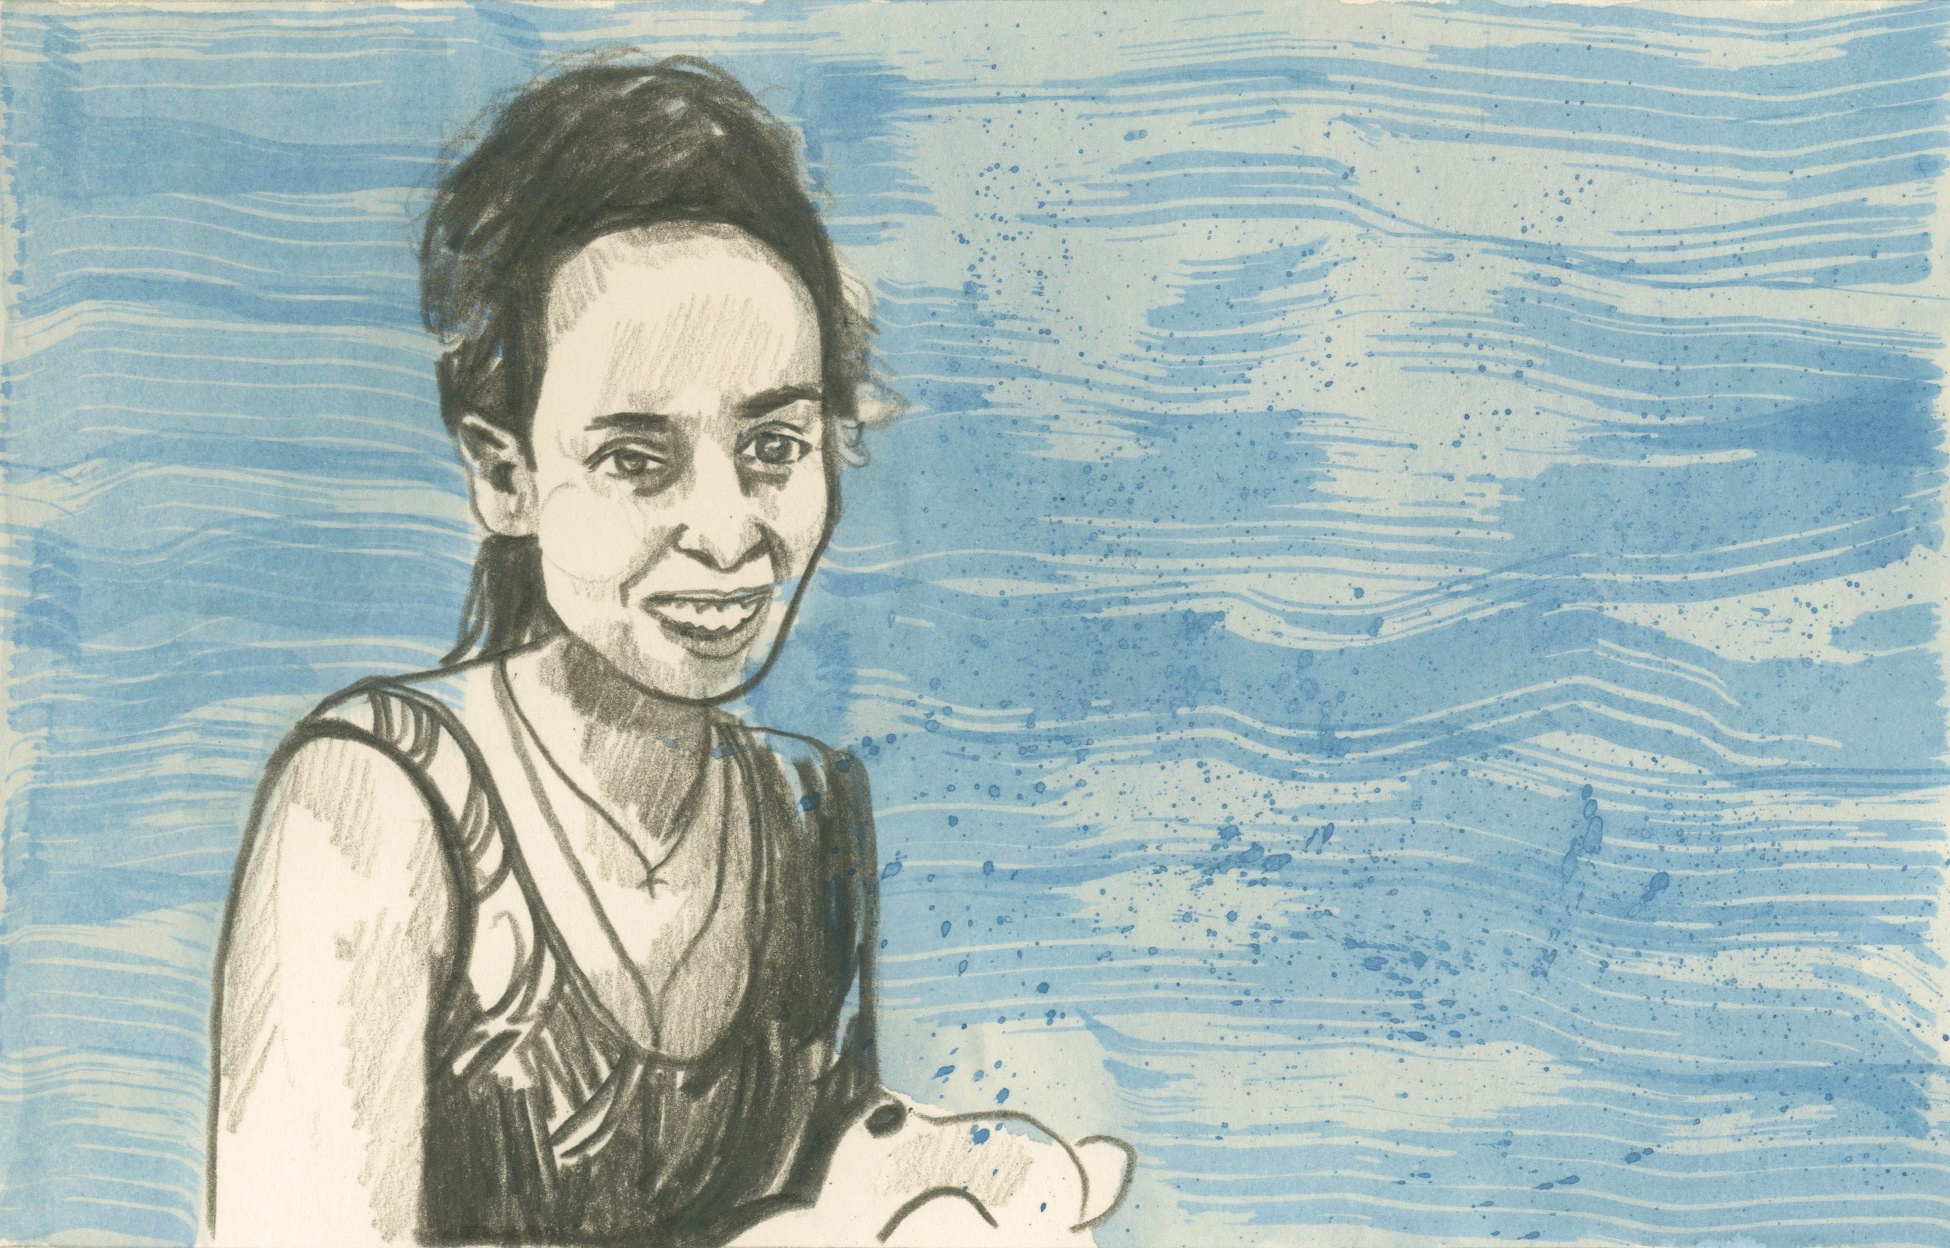 26/04/15Wegasi Nebiat who fled Eritrea and travelled to Sudan and Turkey and nearly drowned when being smuggled in to Rhodes, Greece